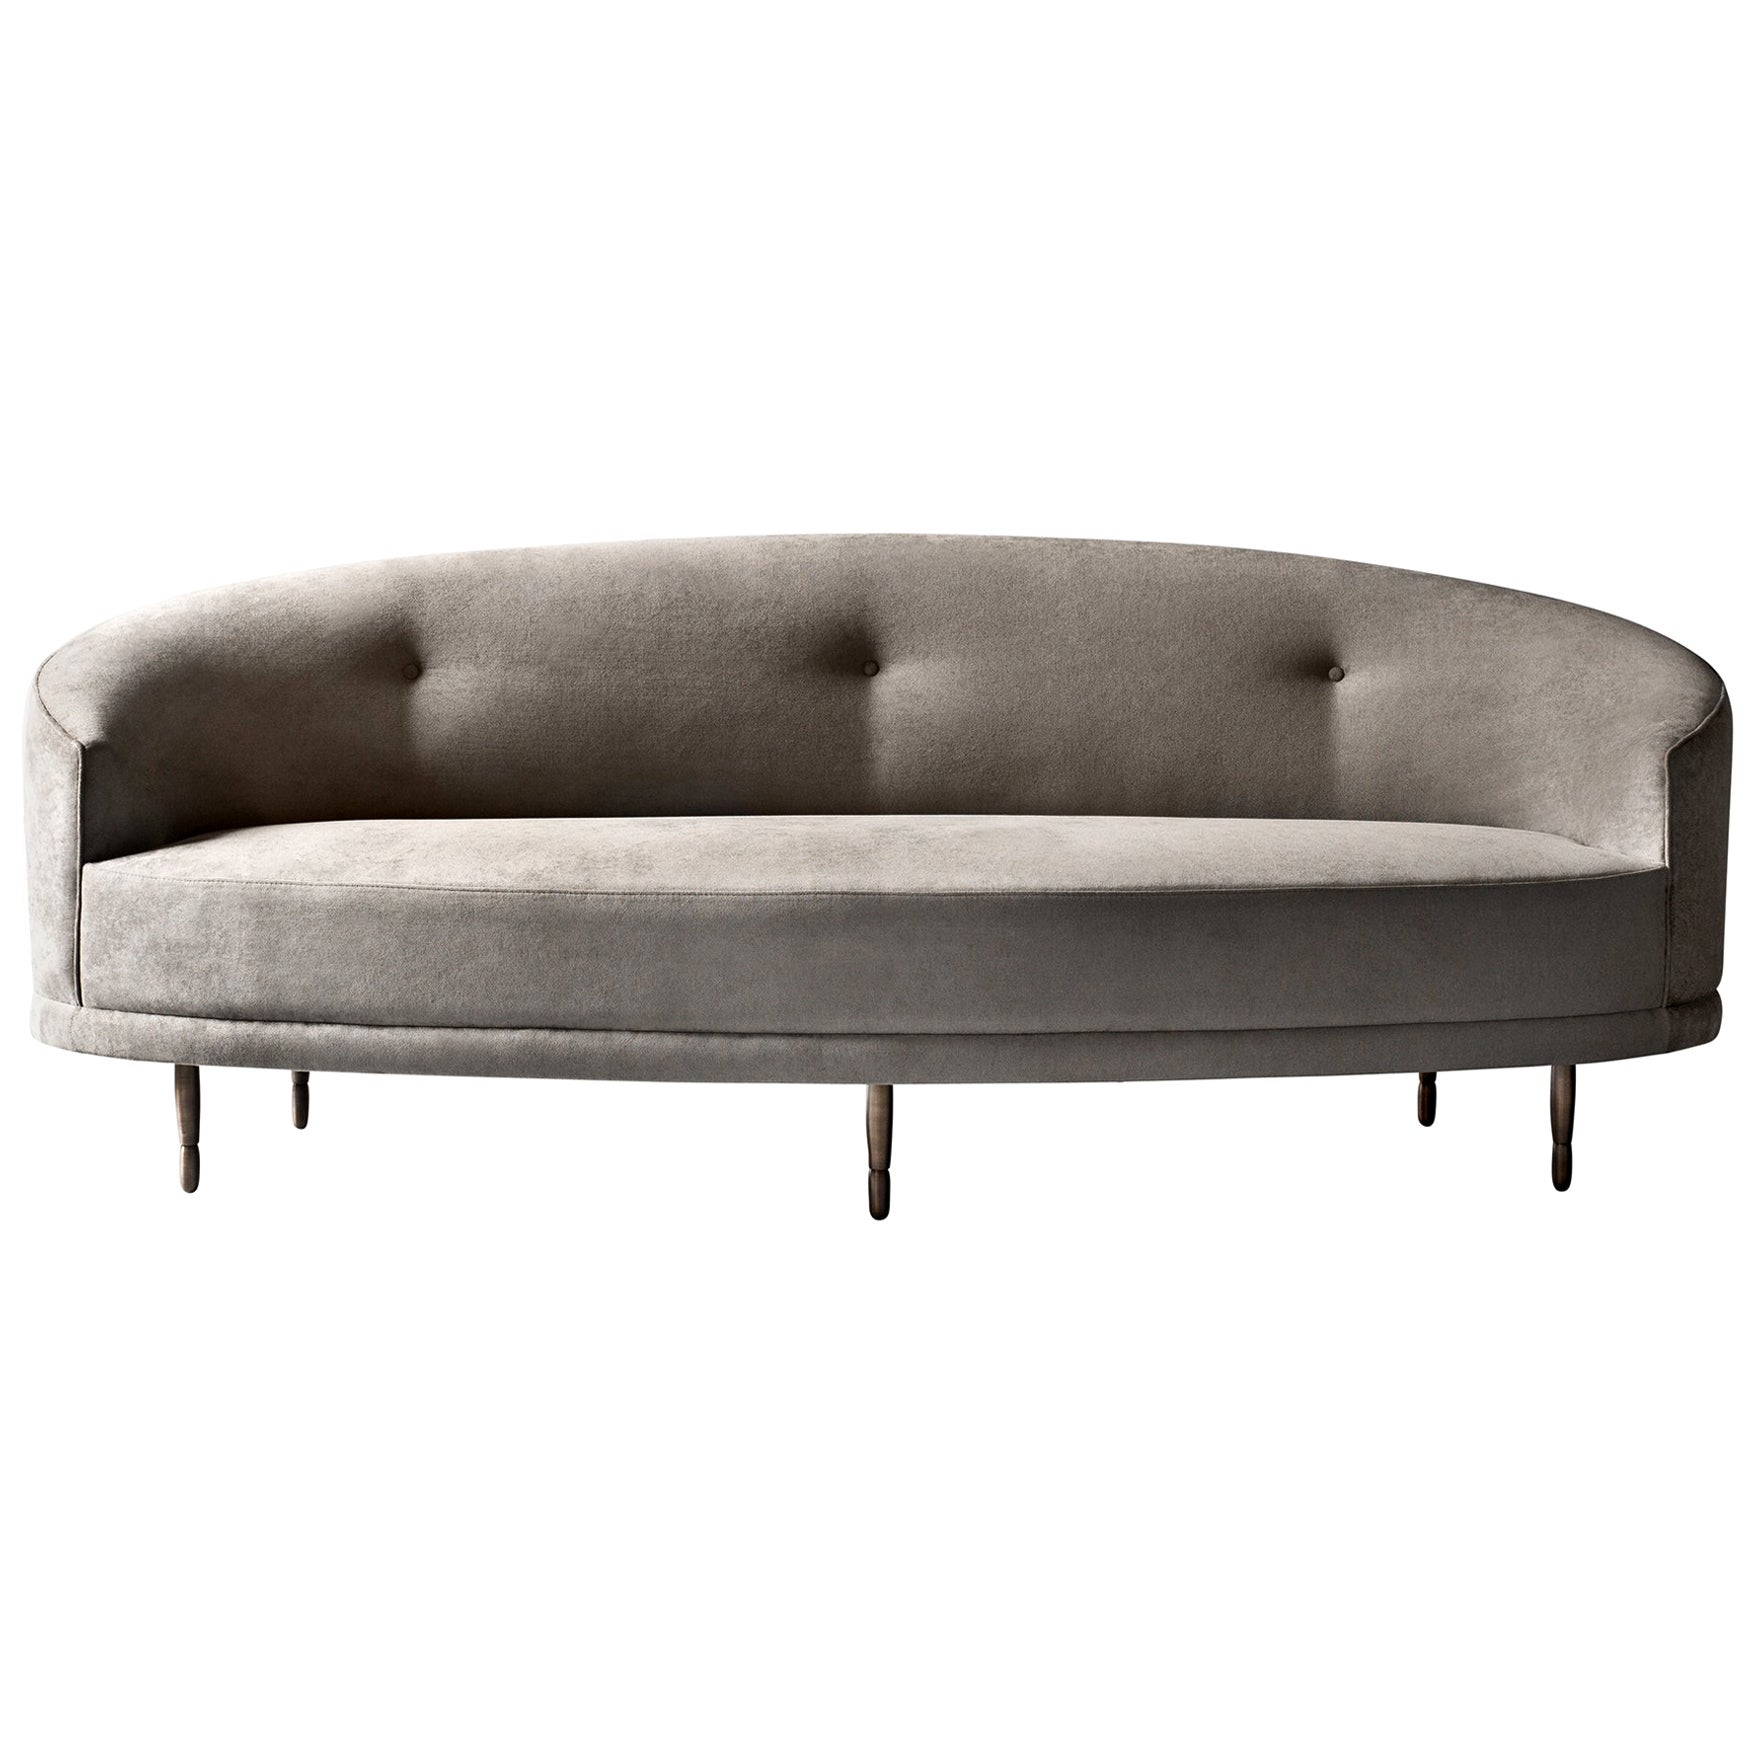 Claire Sofa or Settee by DeMuro Das with Solid Antique Finish Bronze Legs